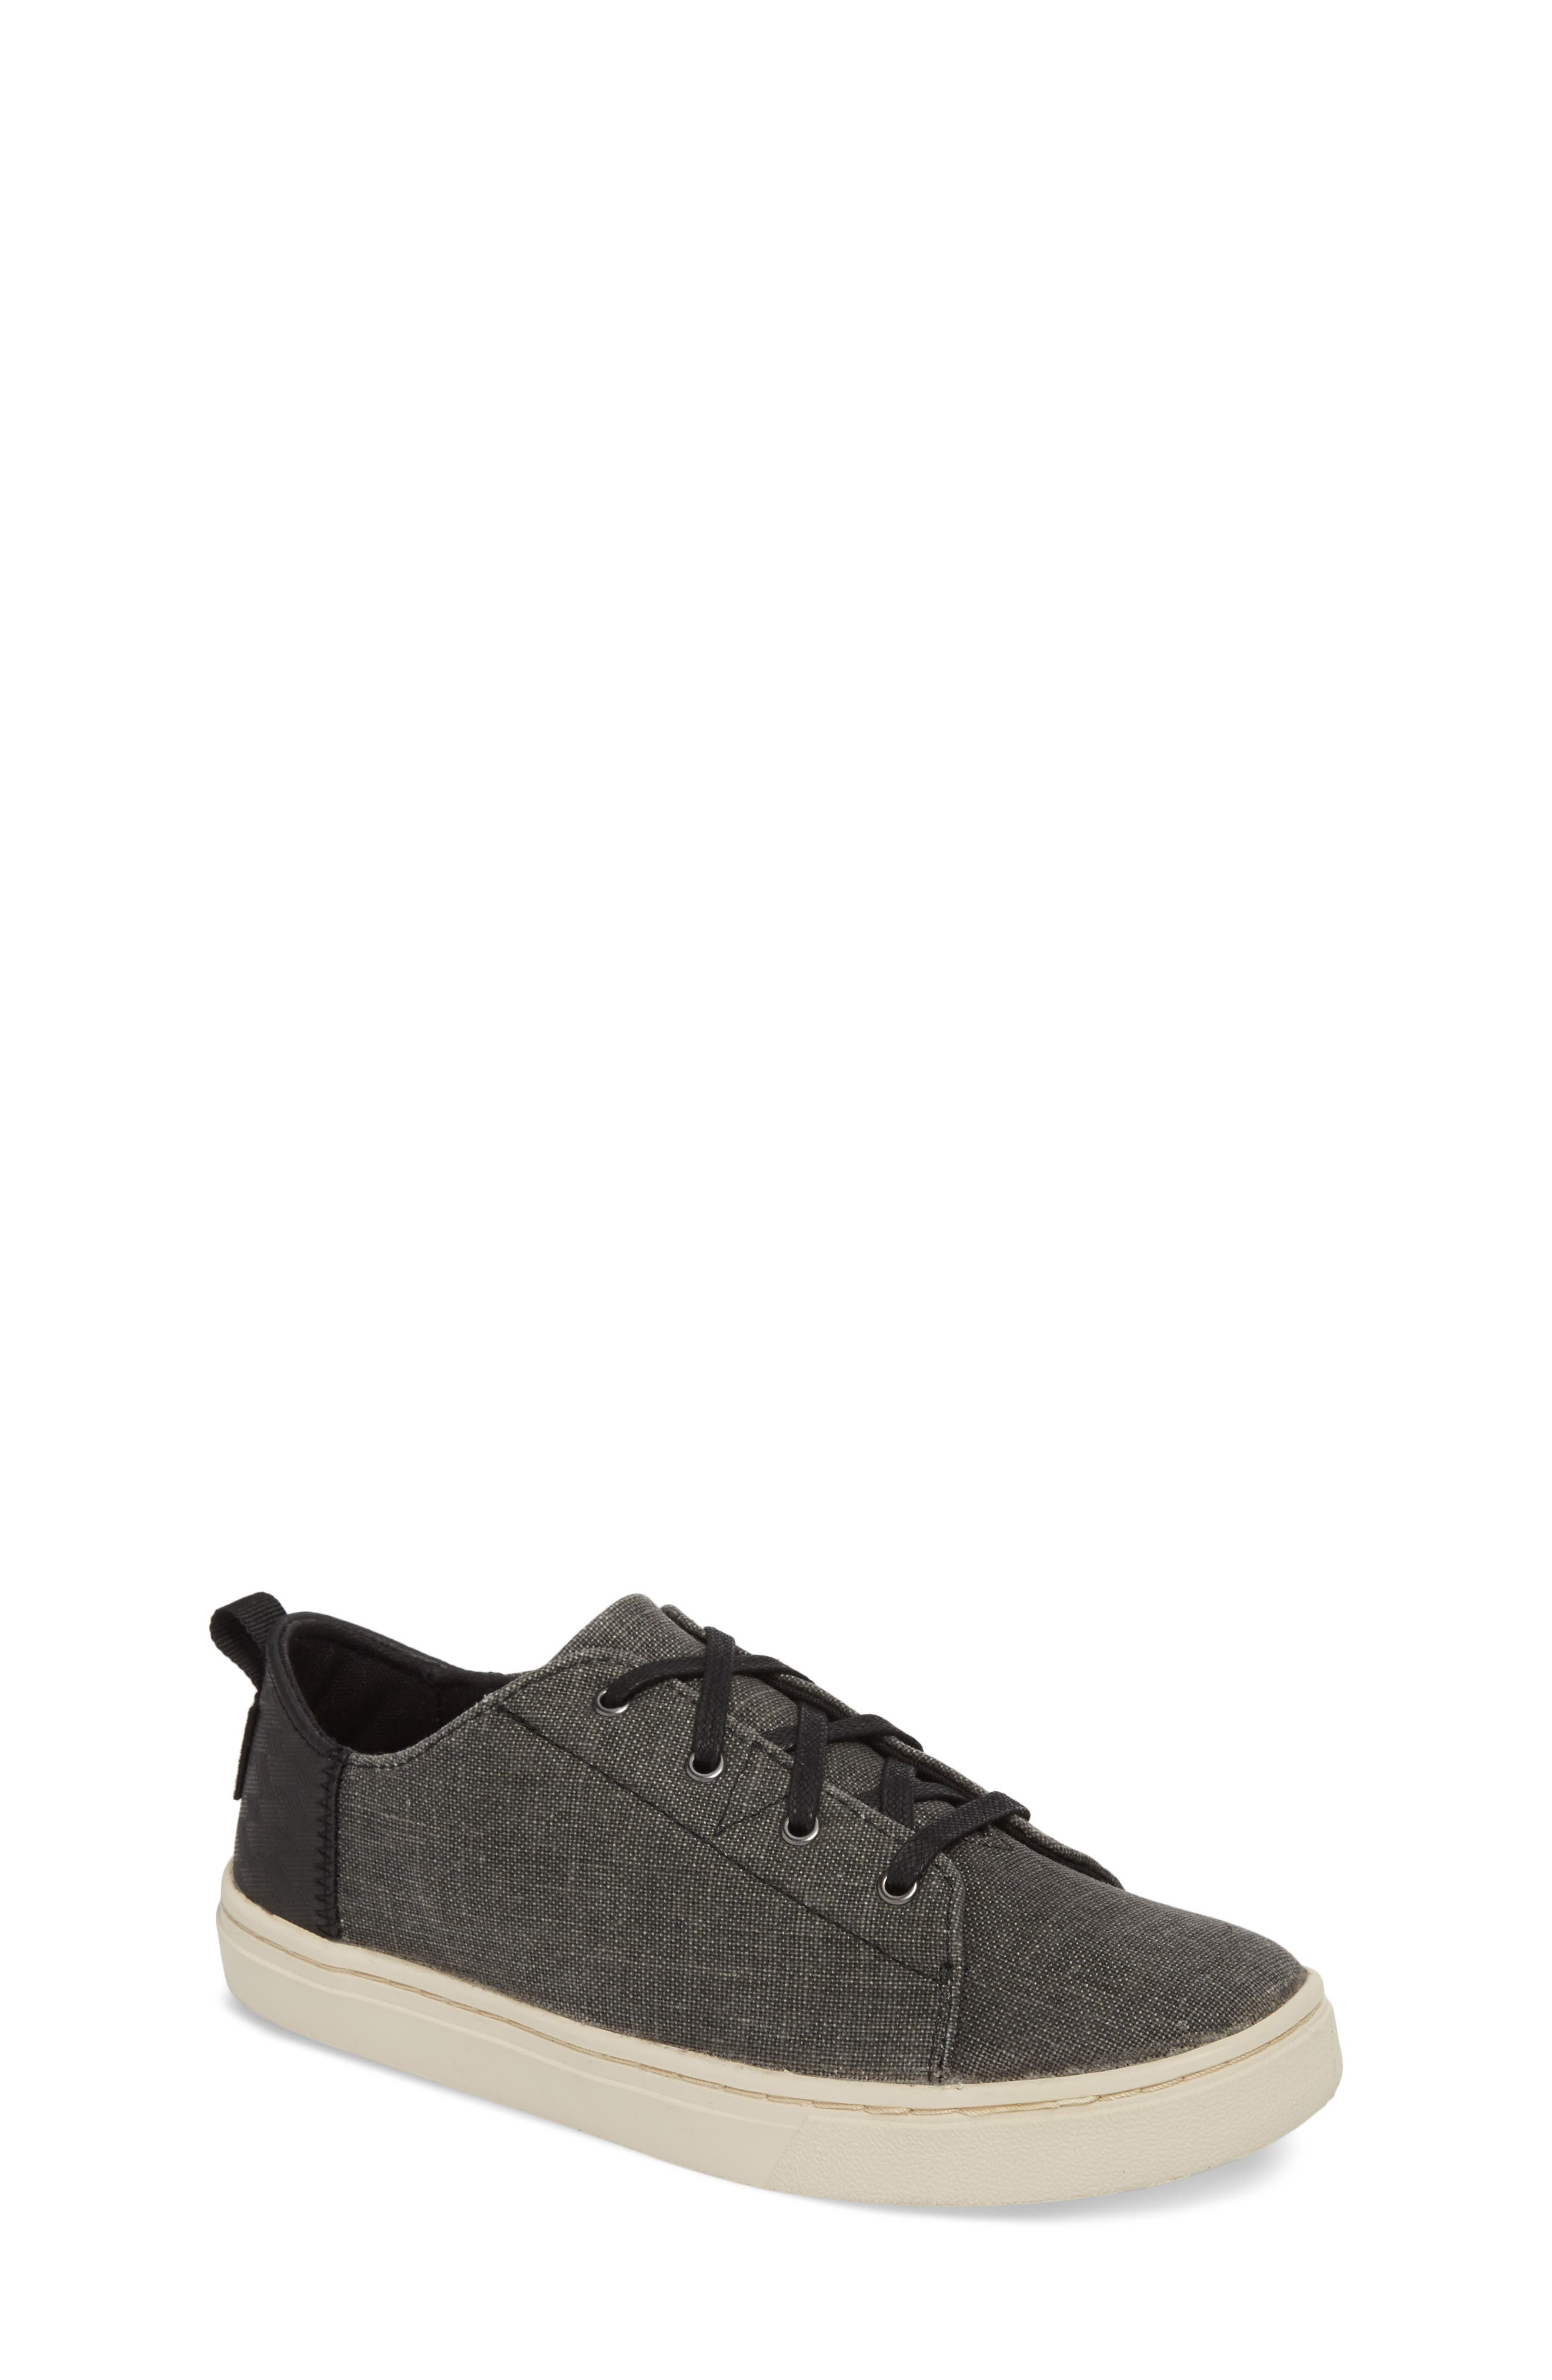 Lenny Sneaker,                         Main,                         color, 001